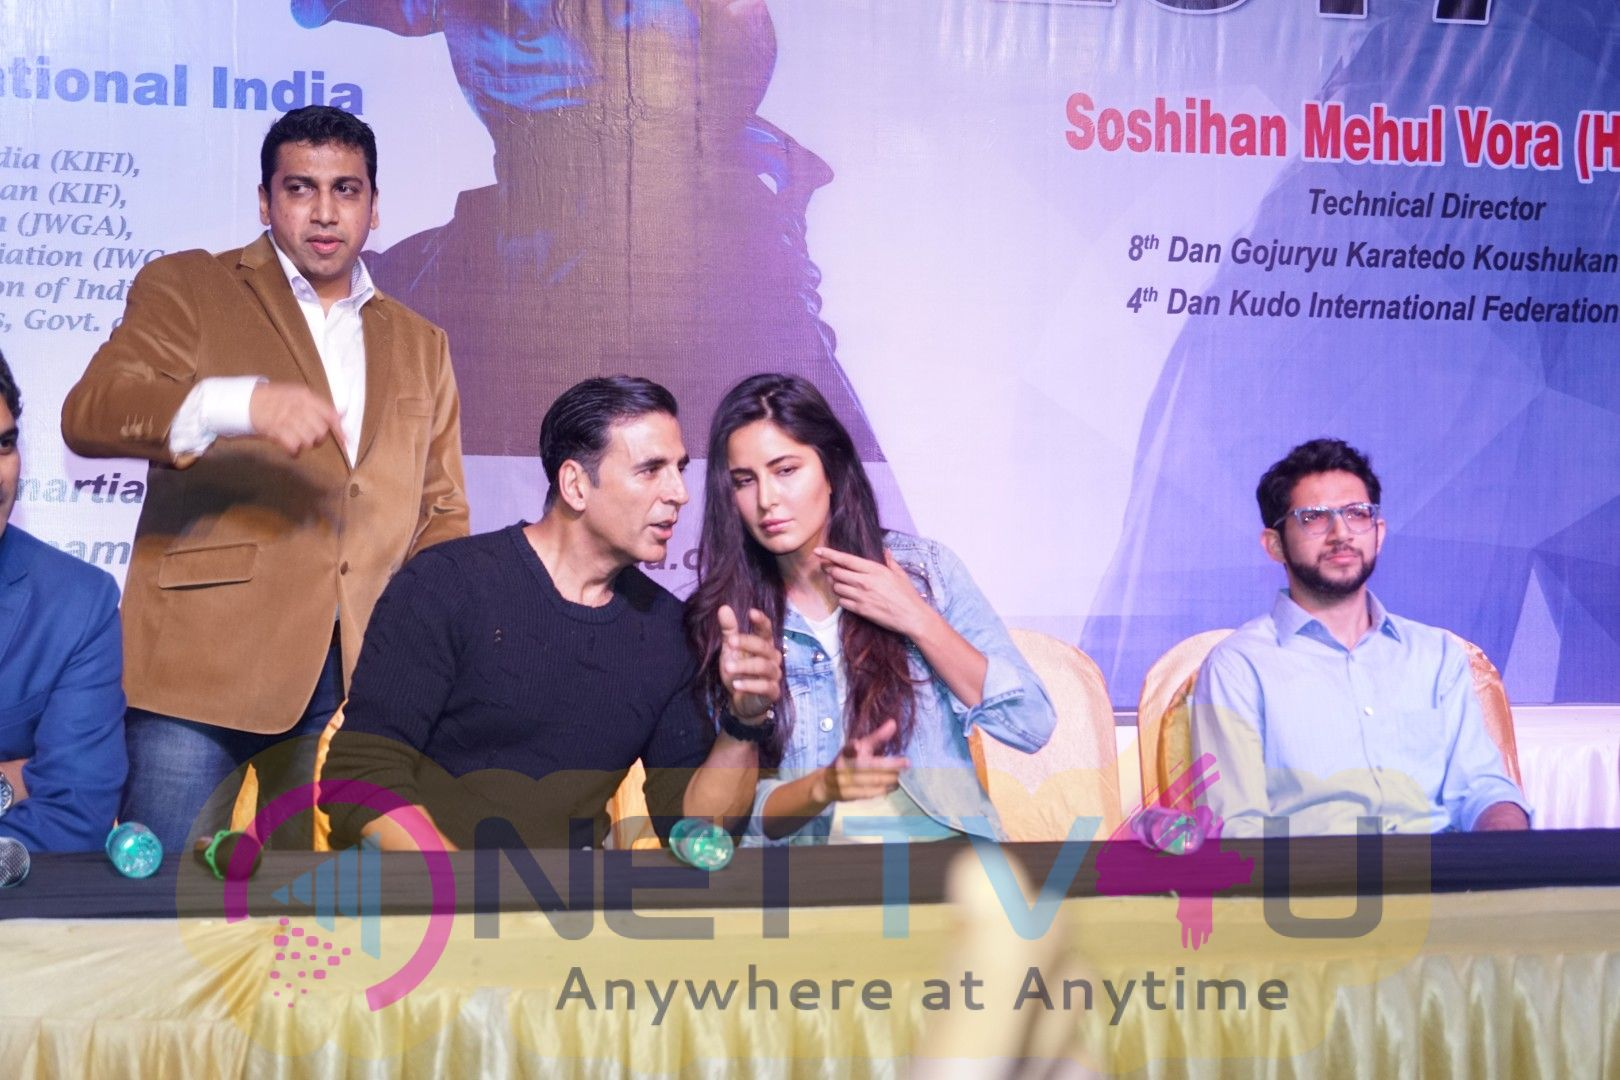 Worlds Biggest Kudo Tournament With Akshay Kumar, Katrina Kaif & Aditya Thackeray Stills